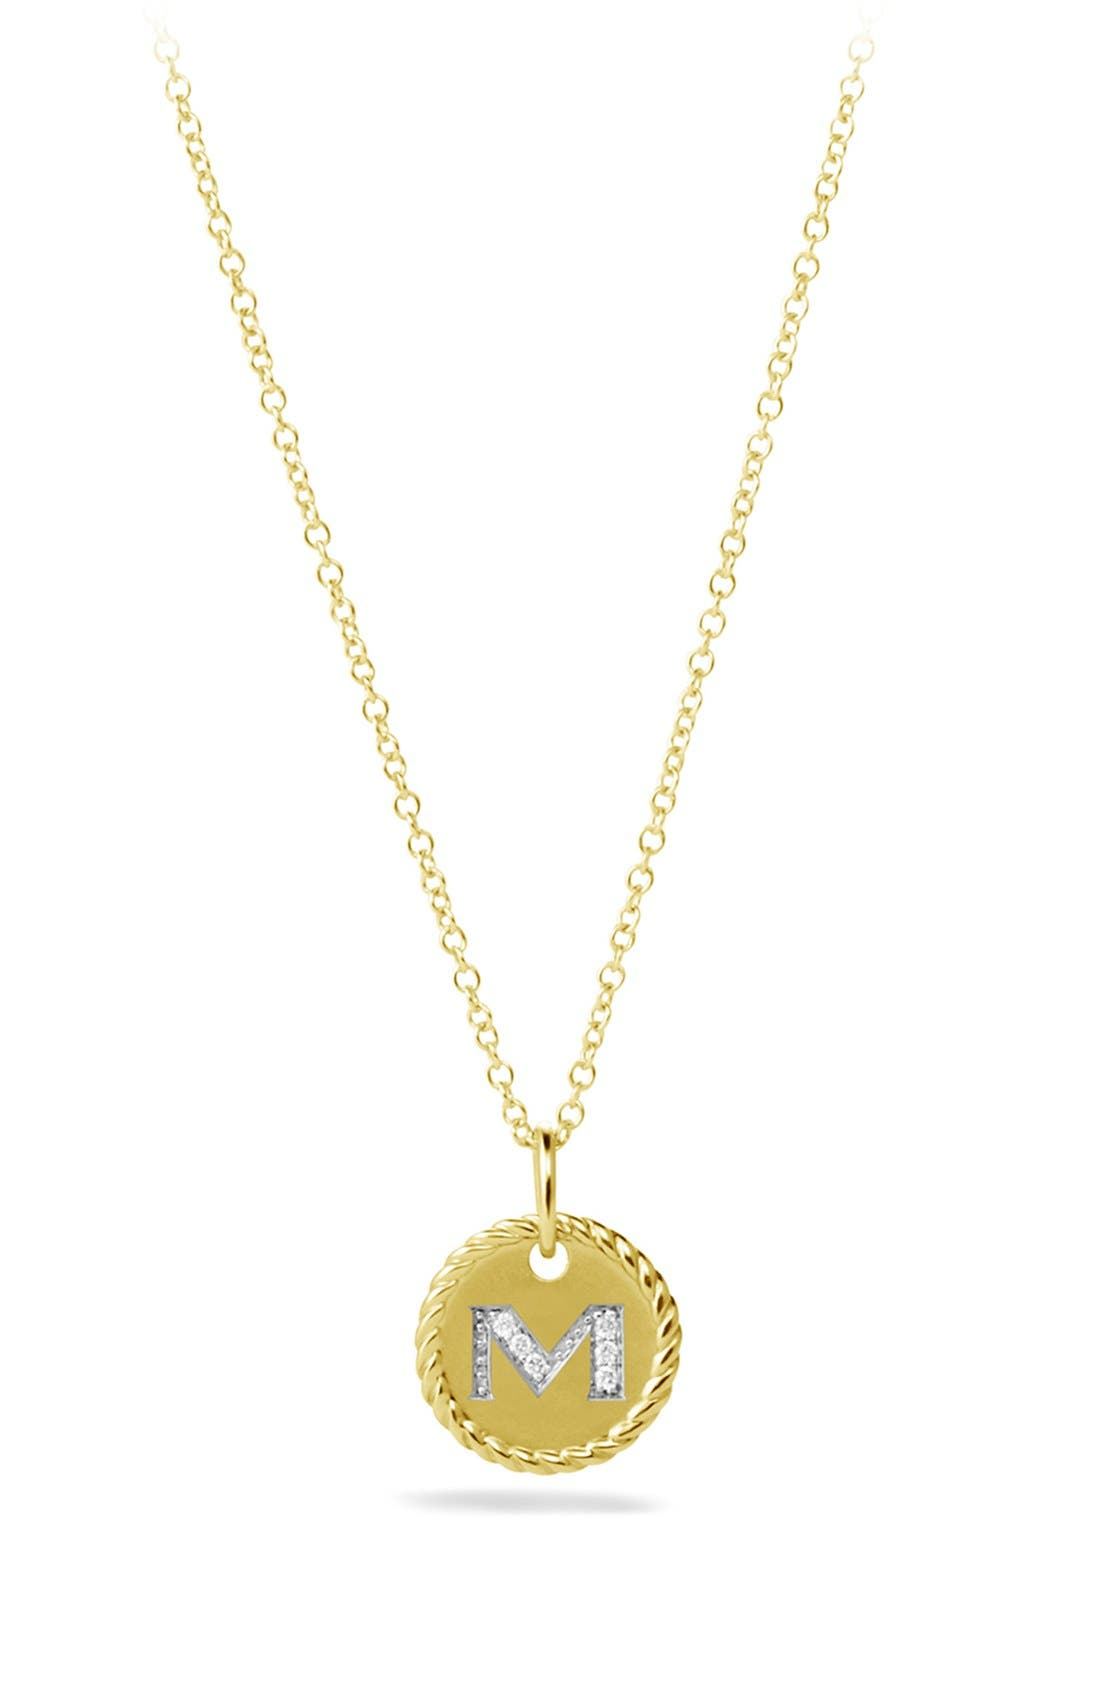 'Cable Collectibles' Initial Pendant with Diamonds in Gold on Chain,                         Main,                         color, M